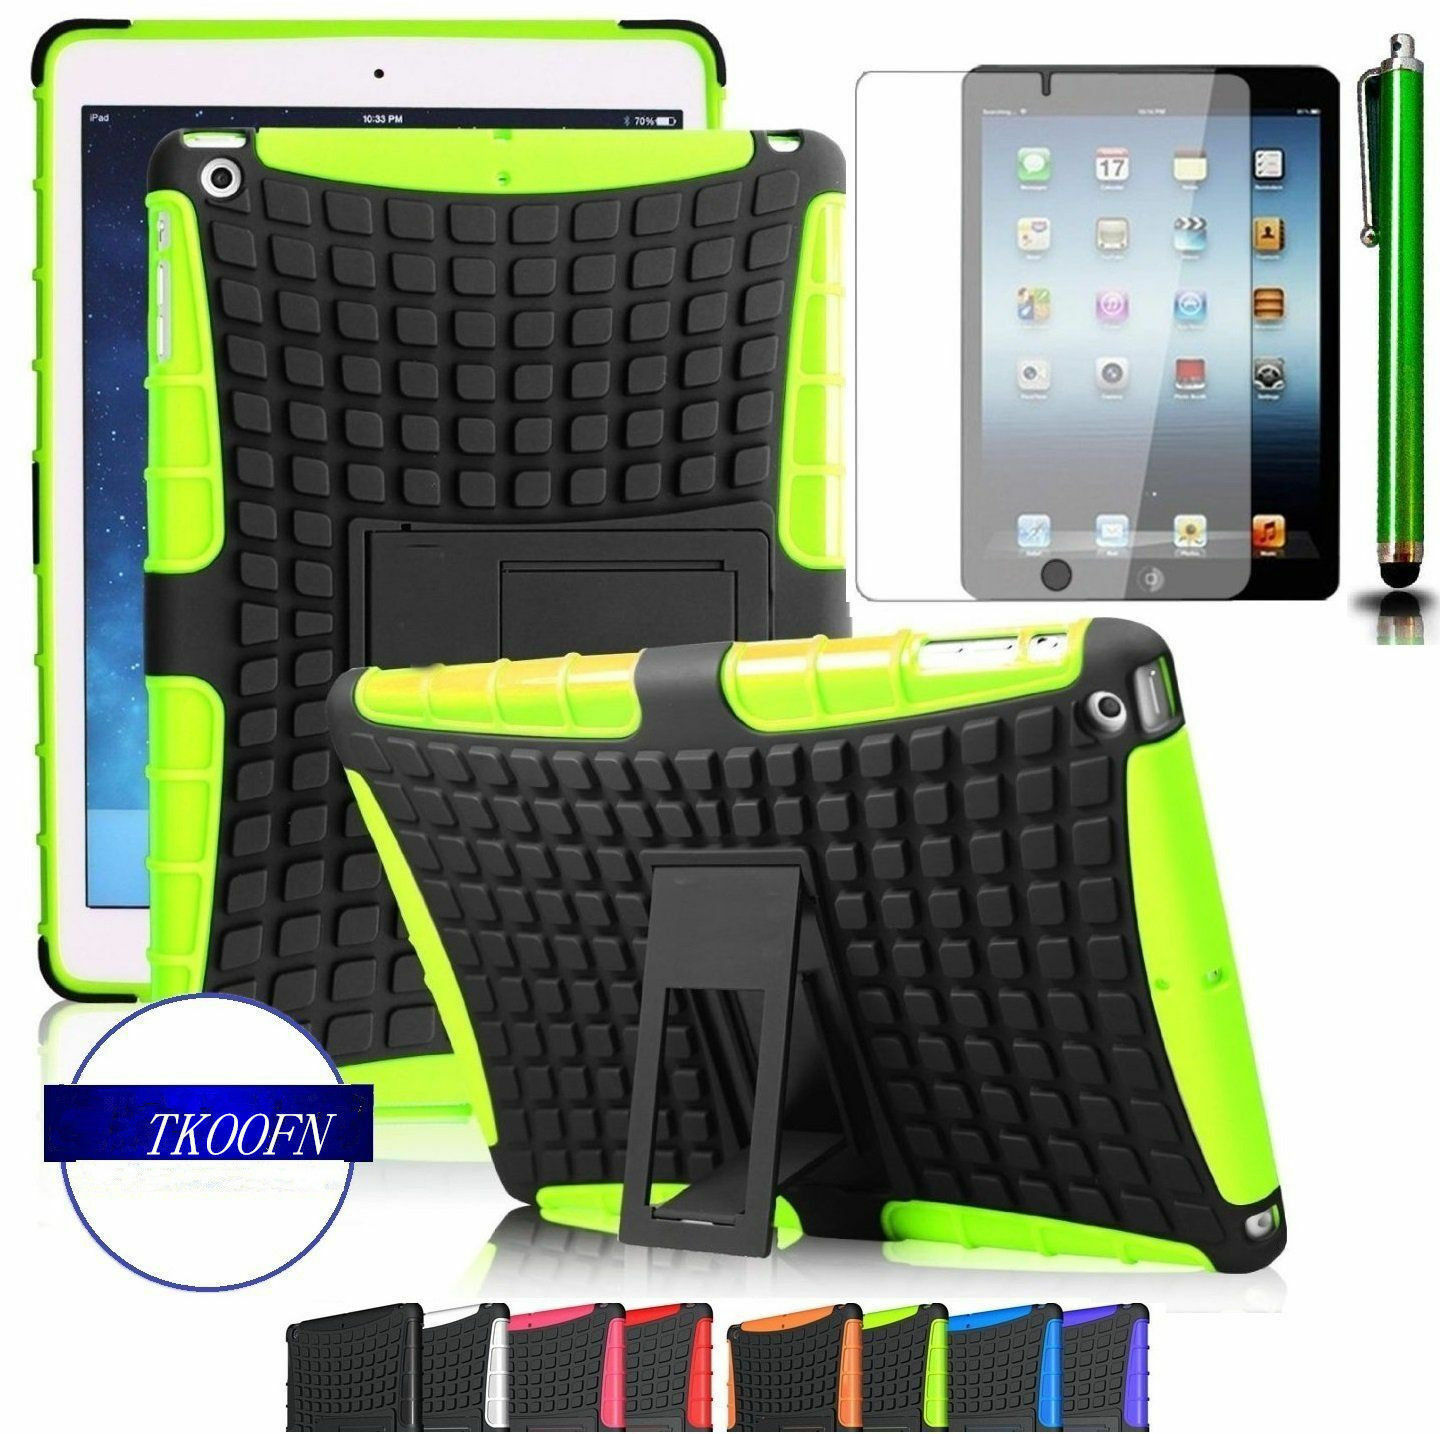 Tough Shockproof Case Cover plus screen protector for Apple Ipad & mini models